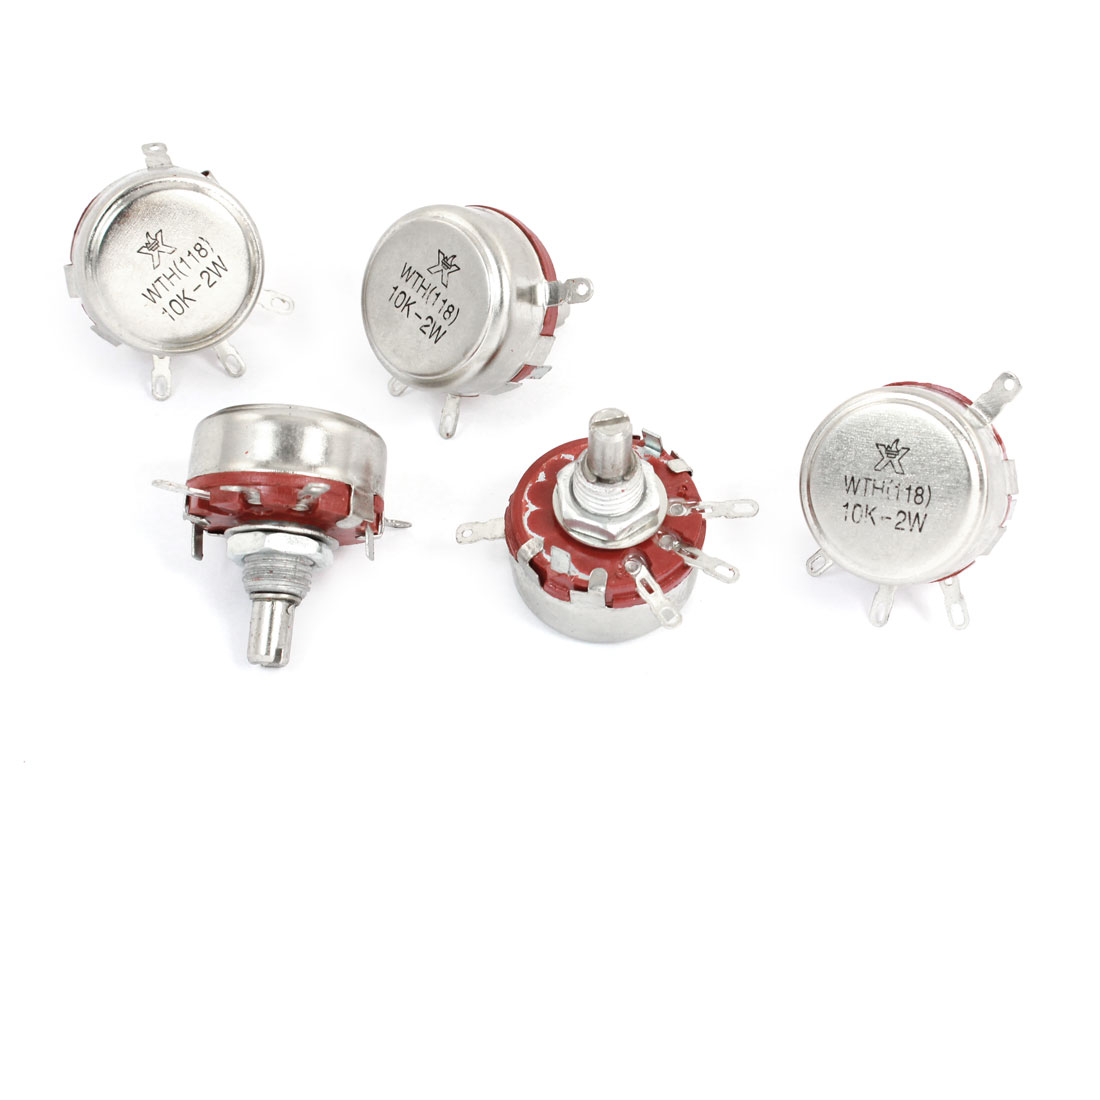 5 Pcs 10K ohm 2W Watt Round Shaft 4 Pins Rotary Carbon Potentiometer WTH118